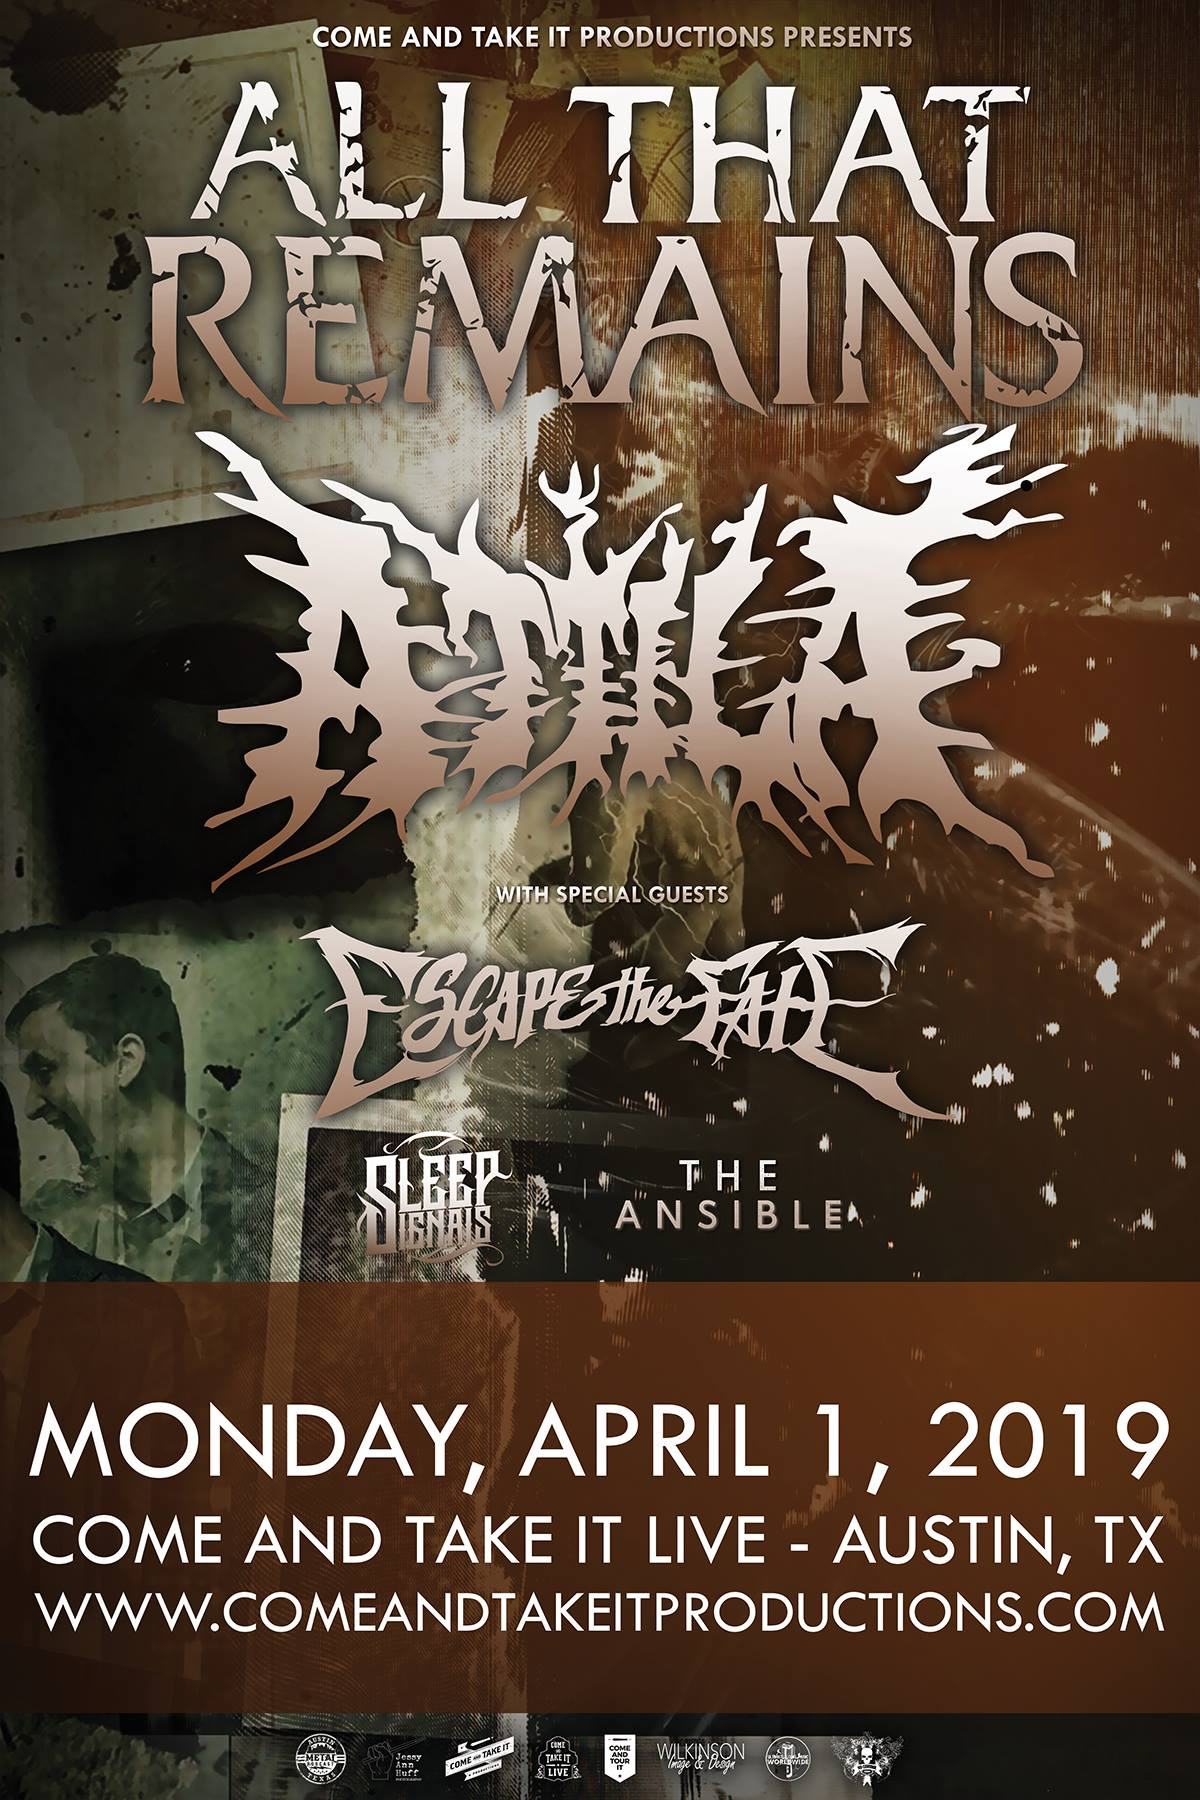 Come and Take It Productions presents... ALL THAT REMAINS / ATTILA ESCAPE THE FATE SLEEP SIGNALS THE ANSIBLE Come and Take It Live 2015 E. Riverside Dr., Bldg. 4 Austin, TX 78741 Monday, April 1, 2019 Doors open at 5:30 PM $22 Advance / $25 Day of Show Advance tickets can be purchased here: https://www.eventbrite.com/e/all-that-remains-attila-tickets-55177839403 Sponsored By: ATX Metal Podcast Come and Tour It Jessy Ann Huff Photography No Control Radio Ultimate Local Music Worldwide Wilkinson Image & Design